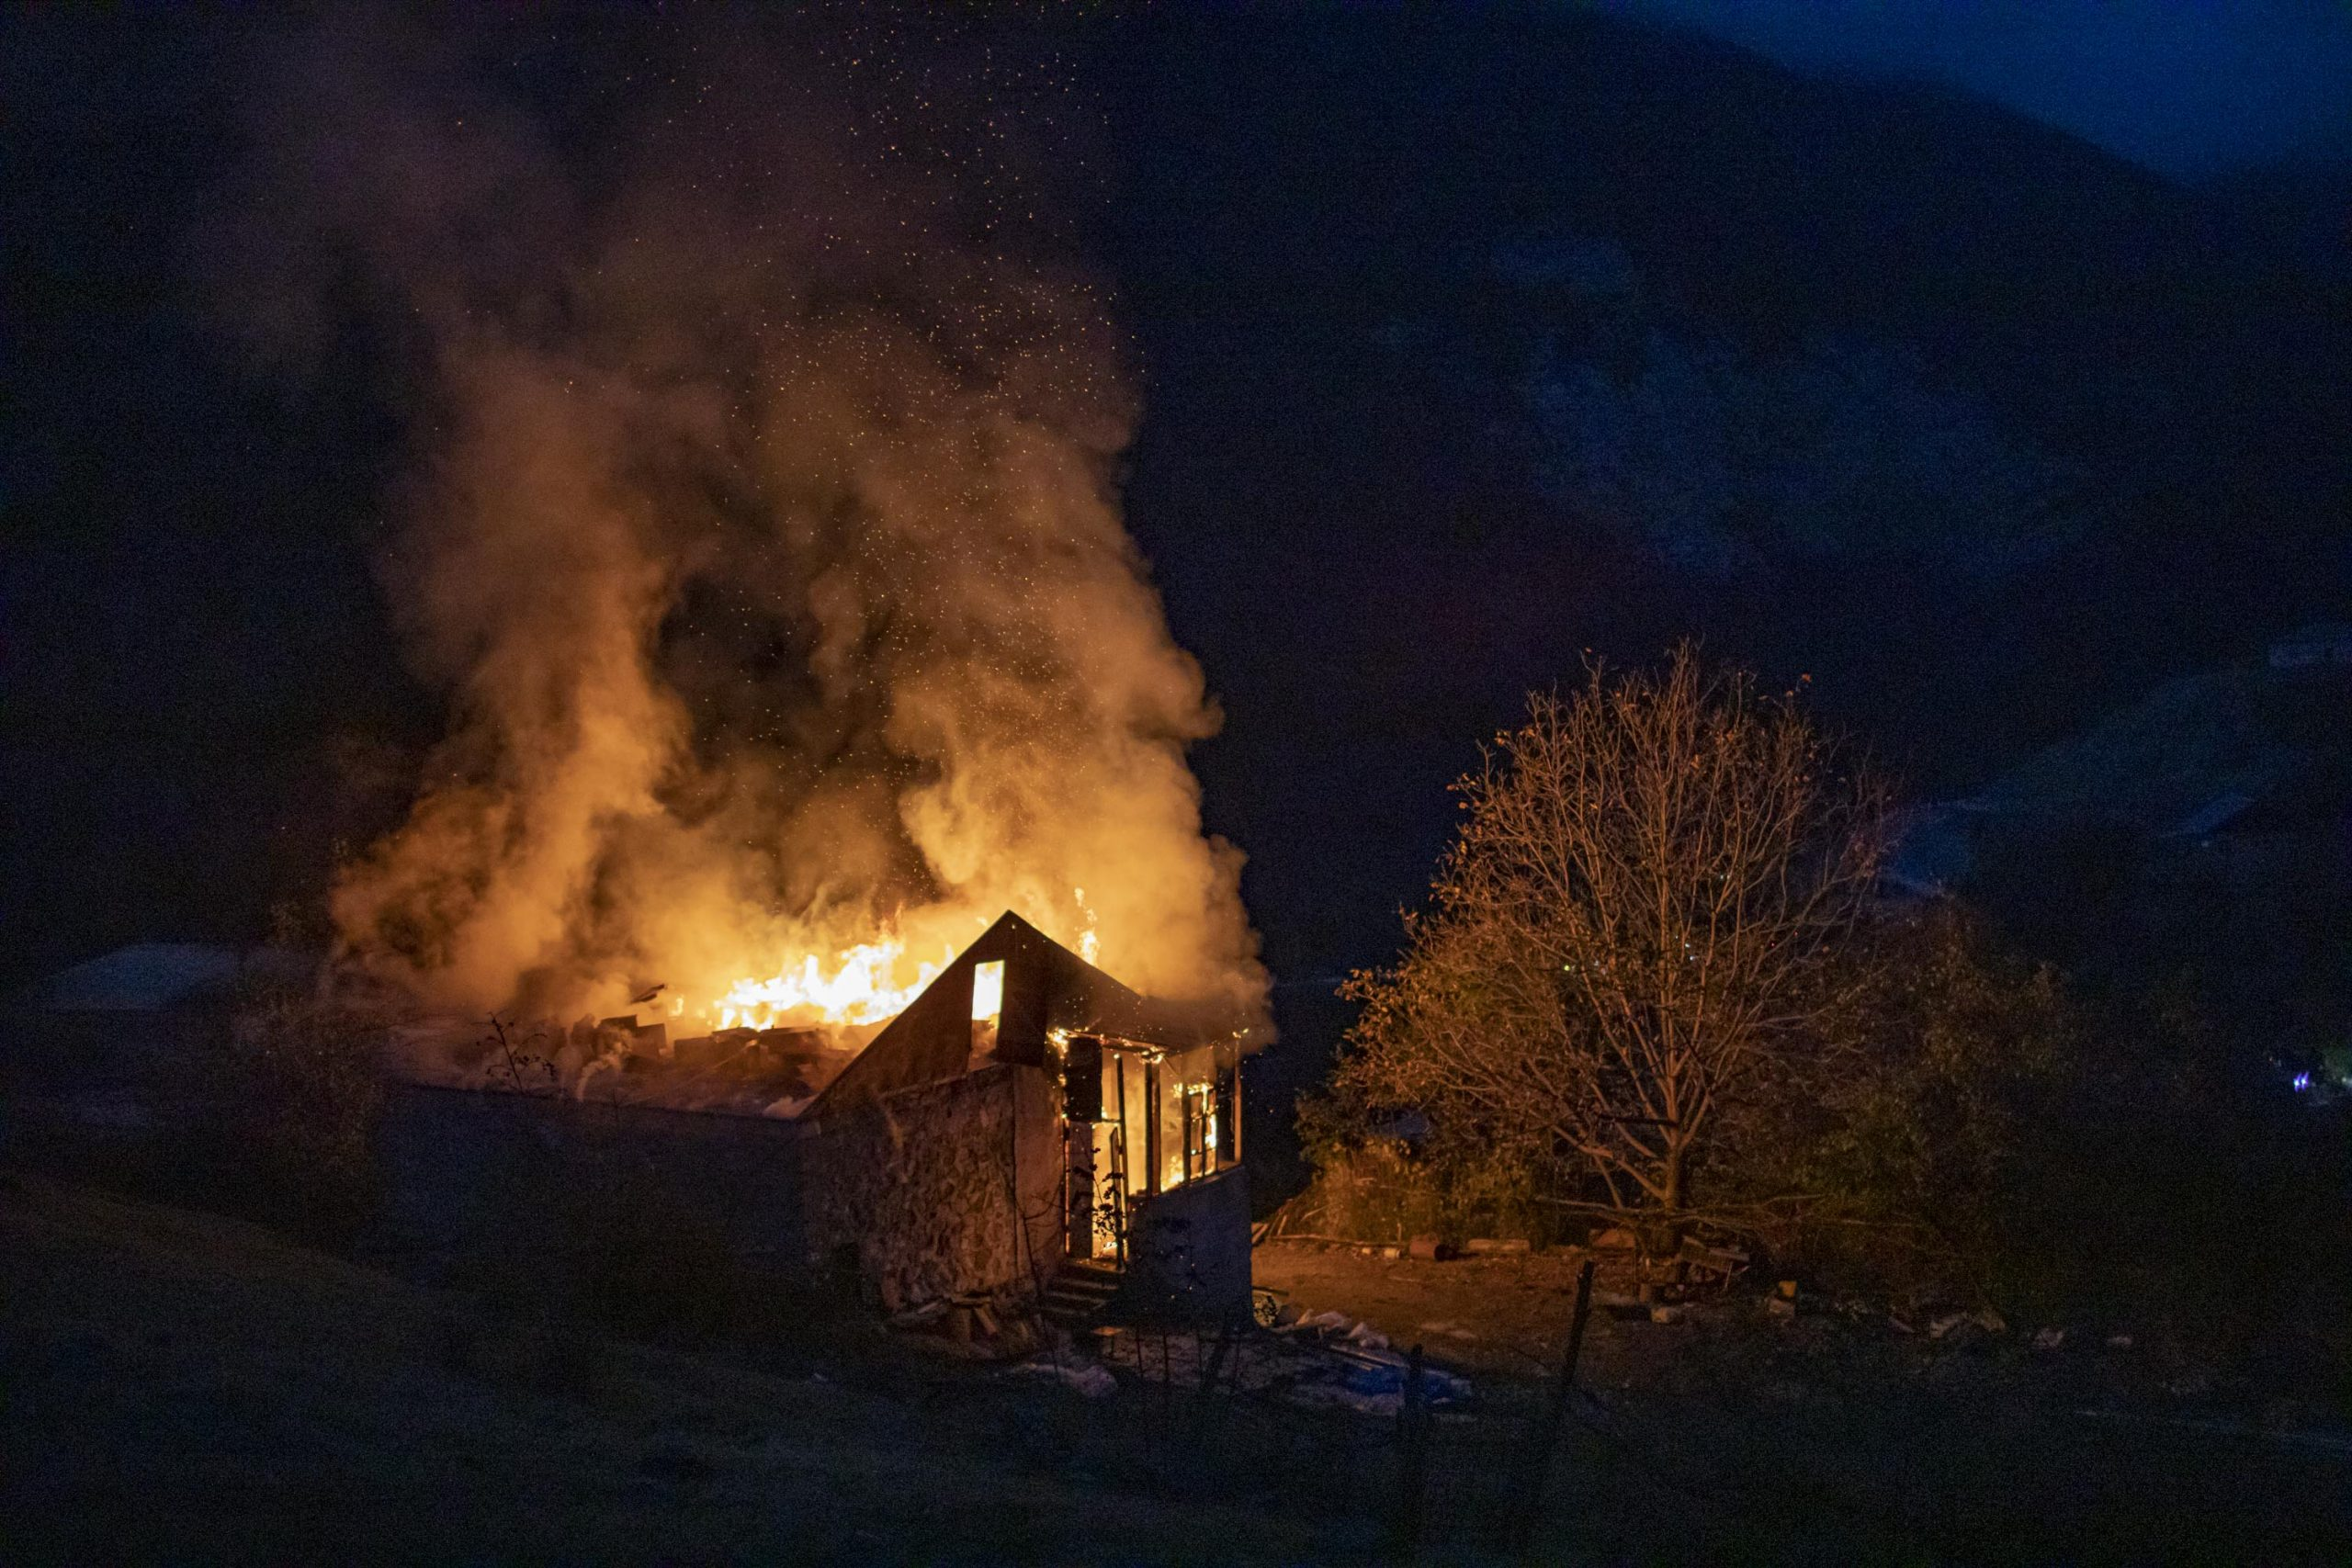 House set on fire by its owners, close to Dadivank Monastery in Kalbajar region, seen on November 14, 2020. Kalbajar is one of the regions surrounding Nagorno-Karabakh, turned over to Azerbaijan as the Nagorno-Karabakh war ended. In numerous cases Armenians burned their houses in this region, in order for them not to be inhabited by people moving here from Azerbaijan.